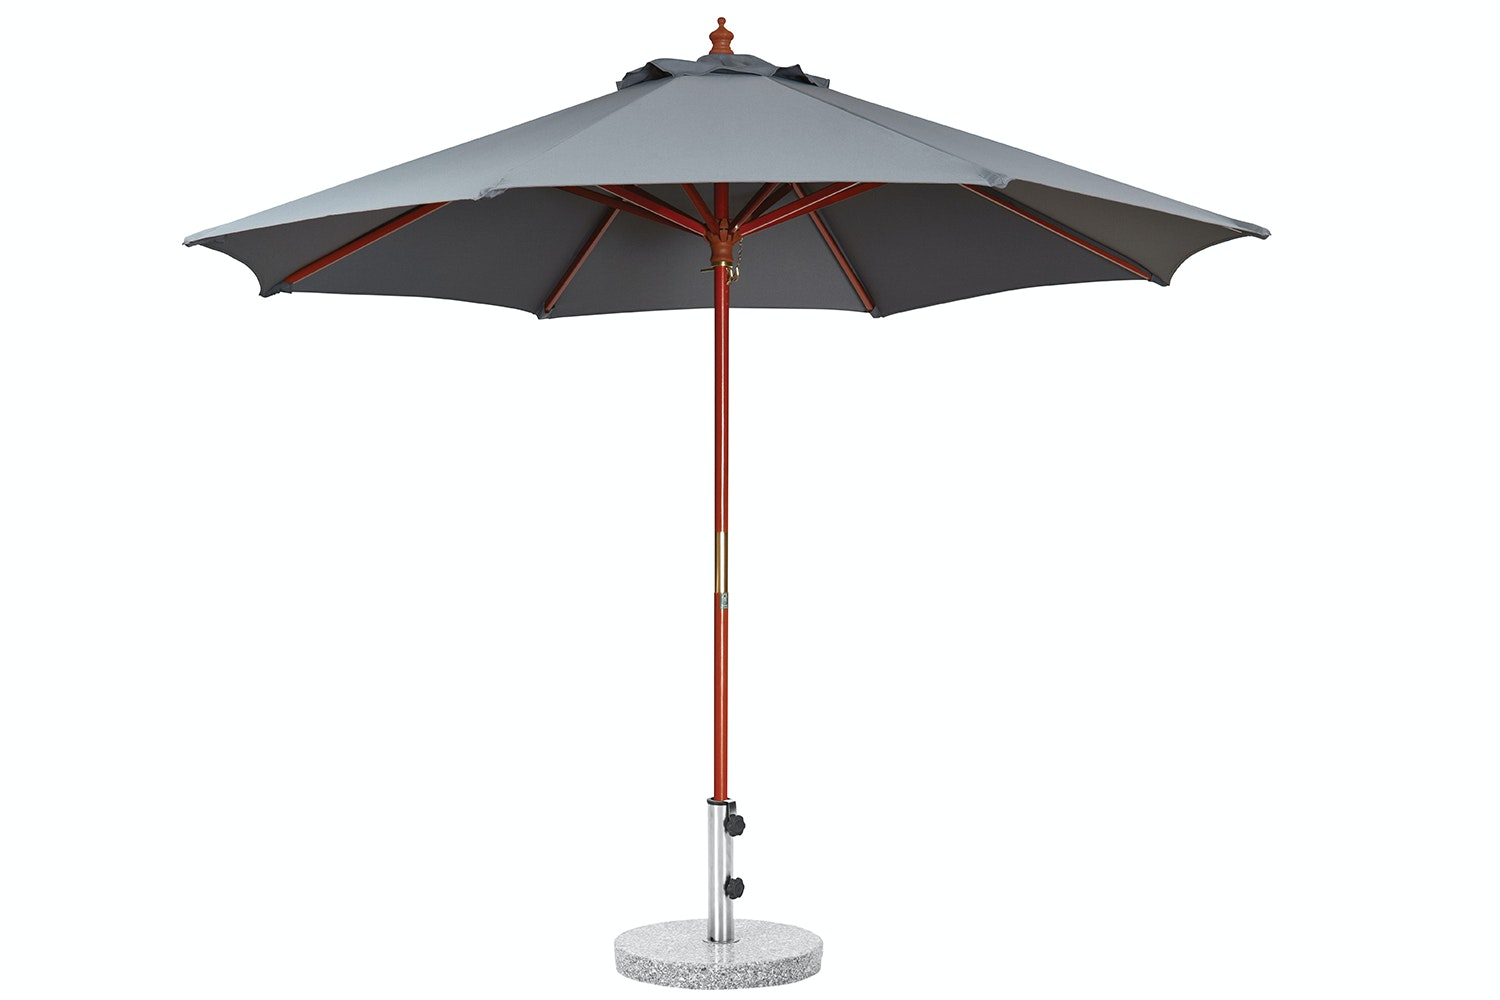 Kosmo 2.7 m Black Outdoor Umbrella with 25kg Granite Base by Peros